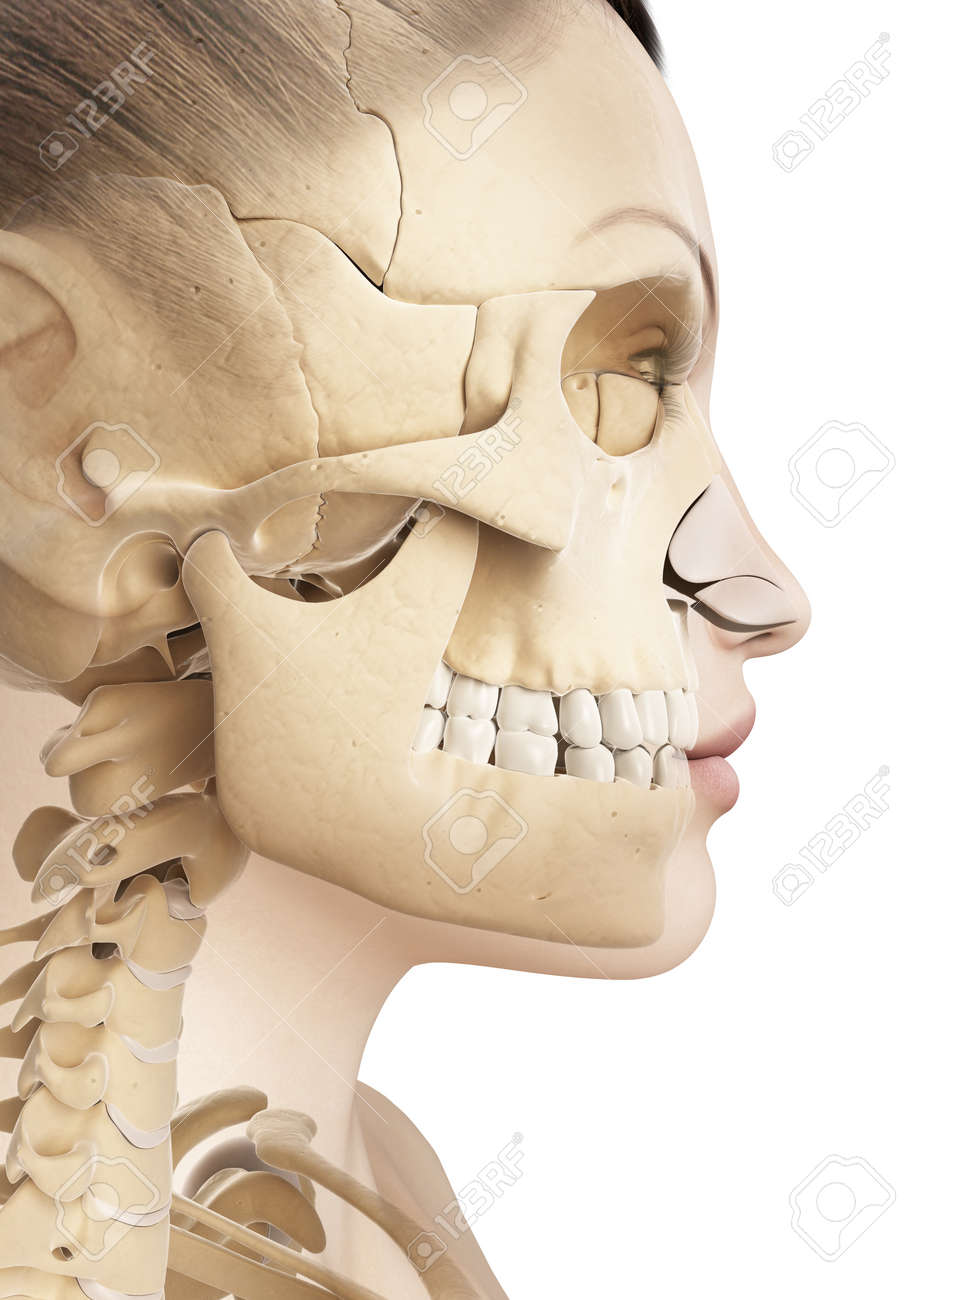 Female Skull Anatomy Stock Photo, Picture And Royalty Free Image ...